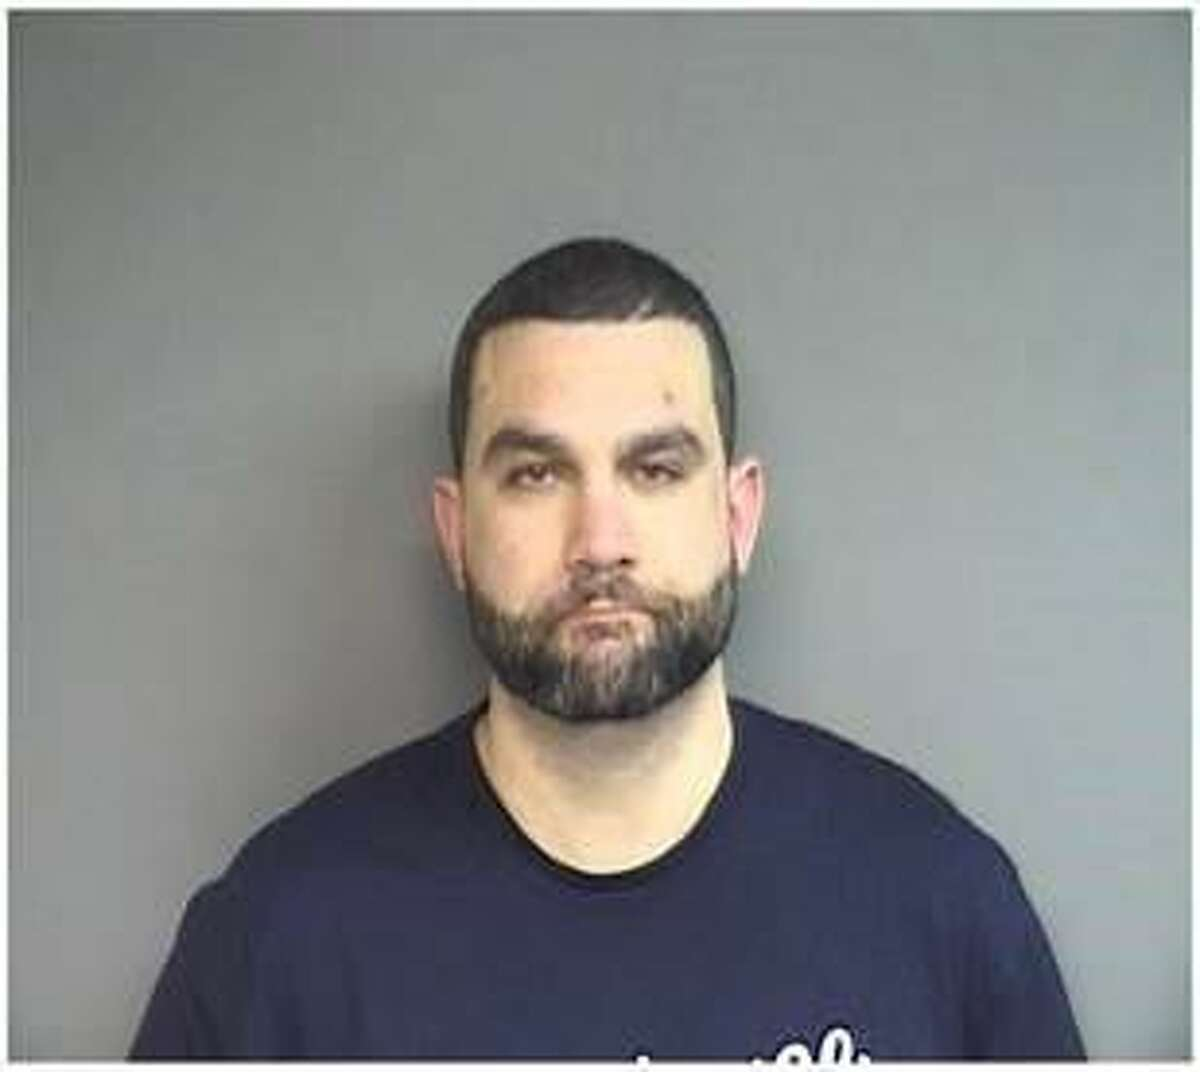 Jose Amor, 30, of Stamford, was charged with possession of heroin Friday night after he was allegedly found with 20 bags of the powerful drug.